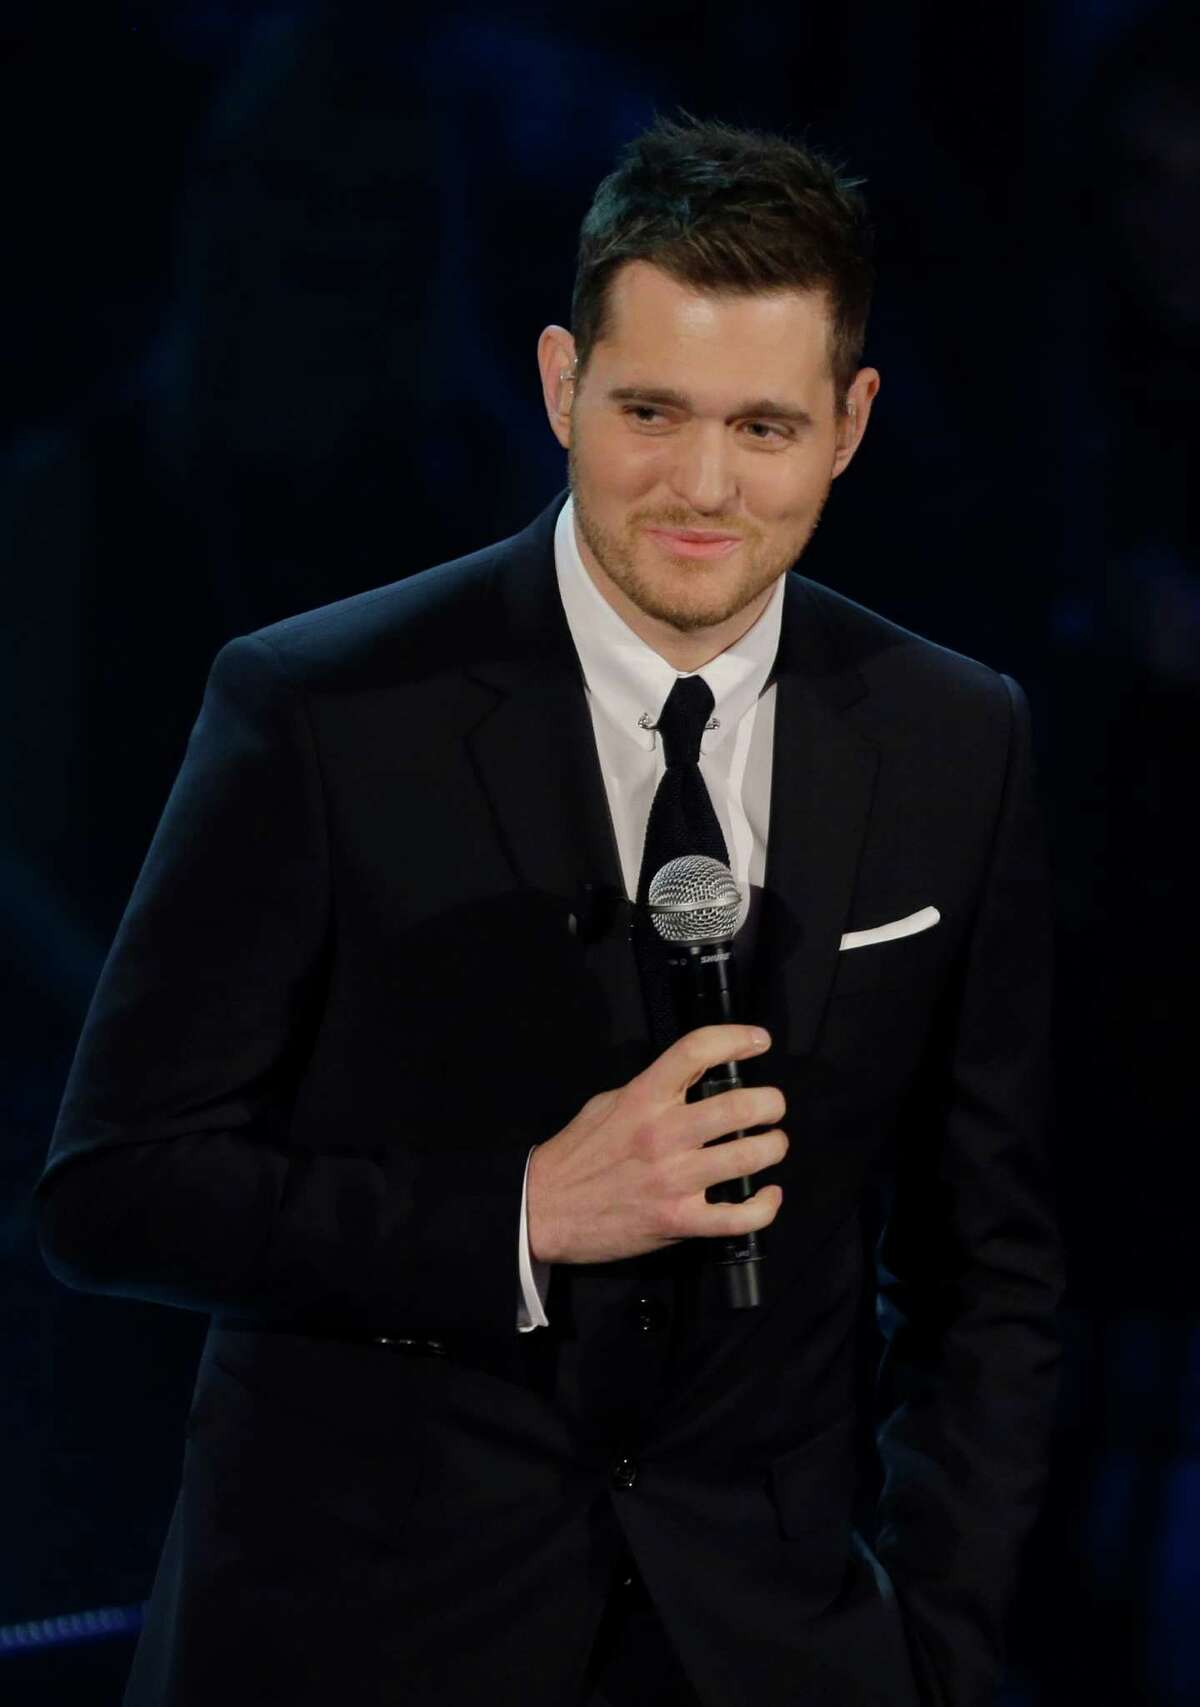 """FILE - In this Nov. 26, 2012 file photo, Canadian singer Michael Buble' performs during the Italian State RAI TV program """"Che Tempo che Fa"""", in Milan, Italy. (AP Photo/Luca Bruno, File)"""